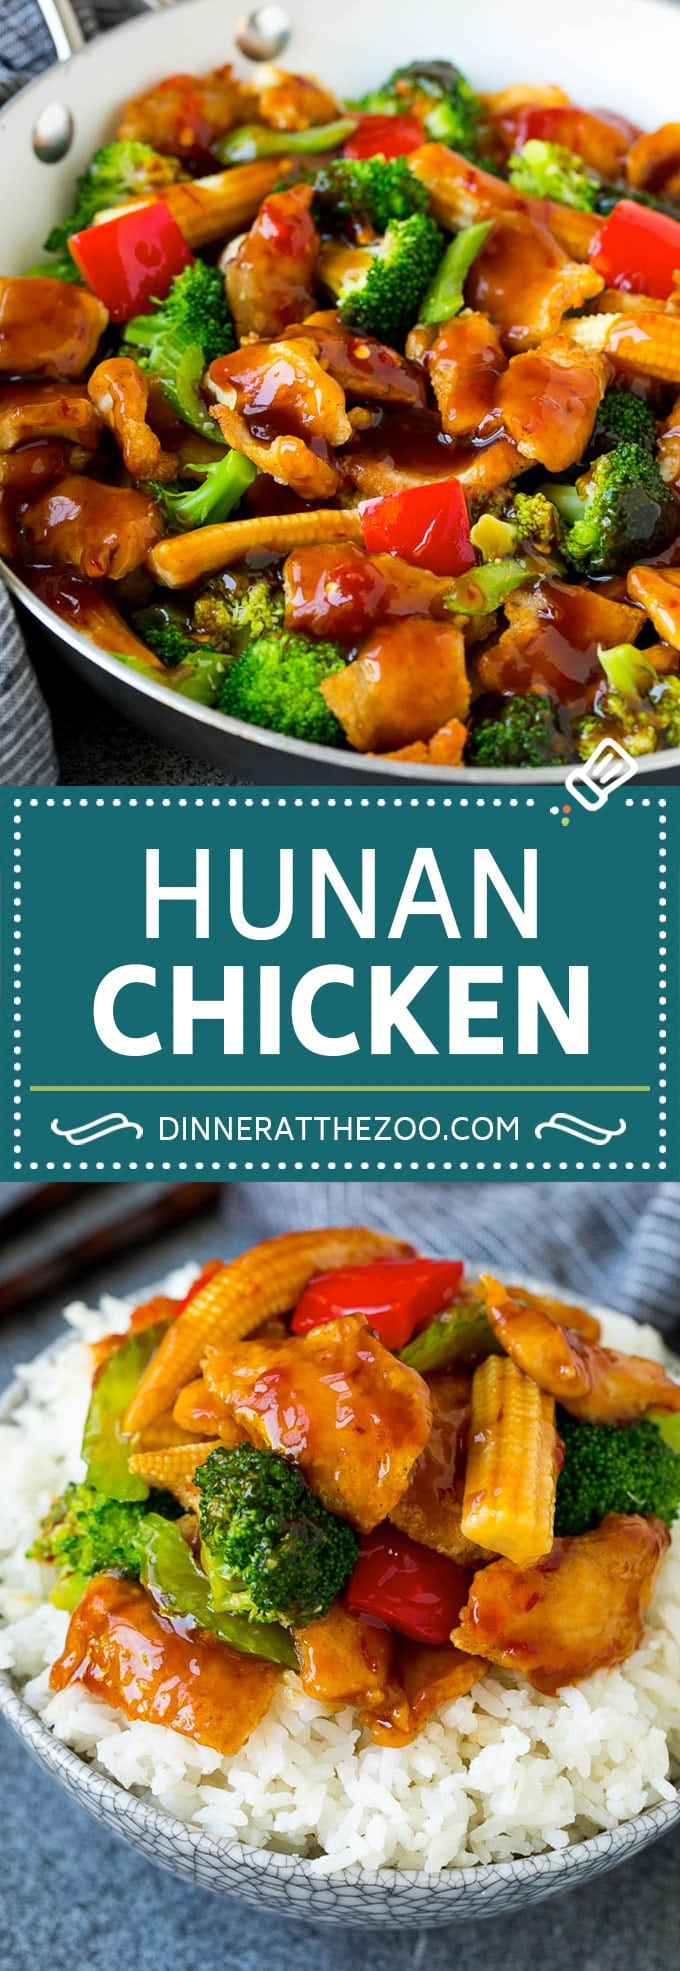 Hunan Chicken Recipe | Chicken Stir Fry | Spicy Chicken #chicken #stirfry #broccoli #dinner #spicy #dinneratthezoo